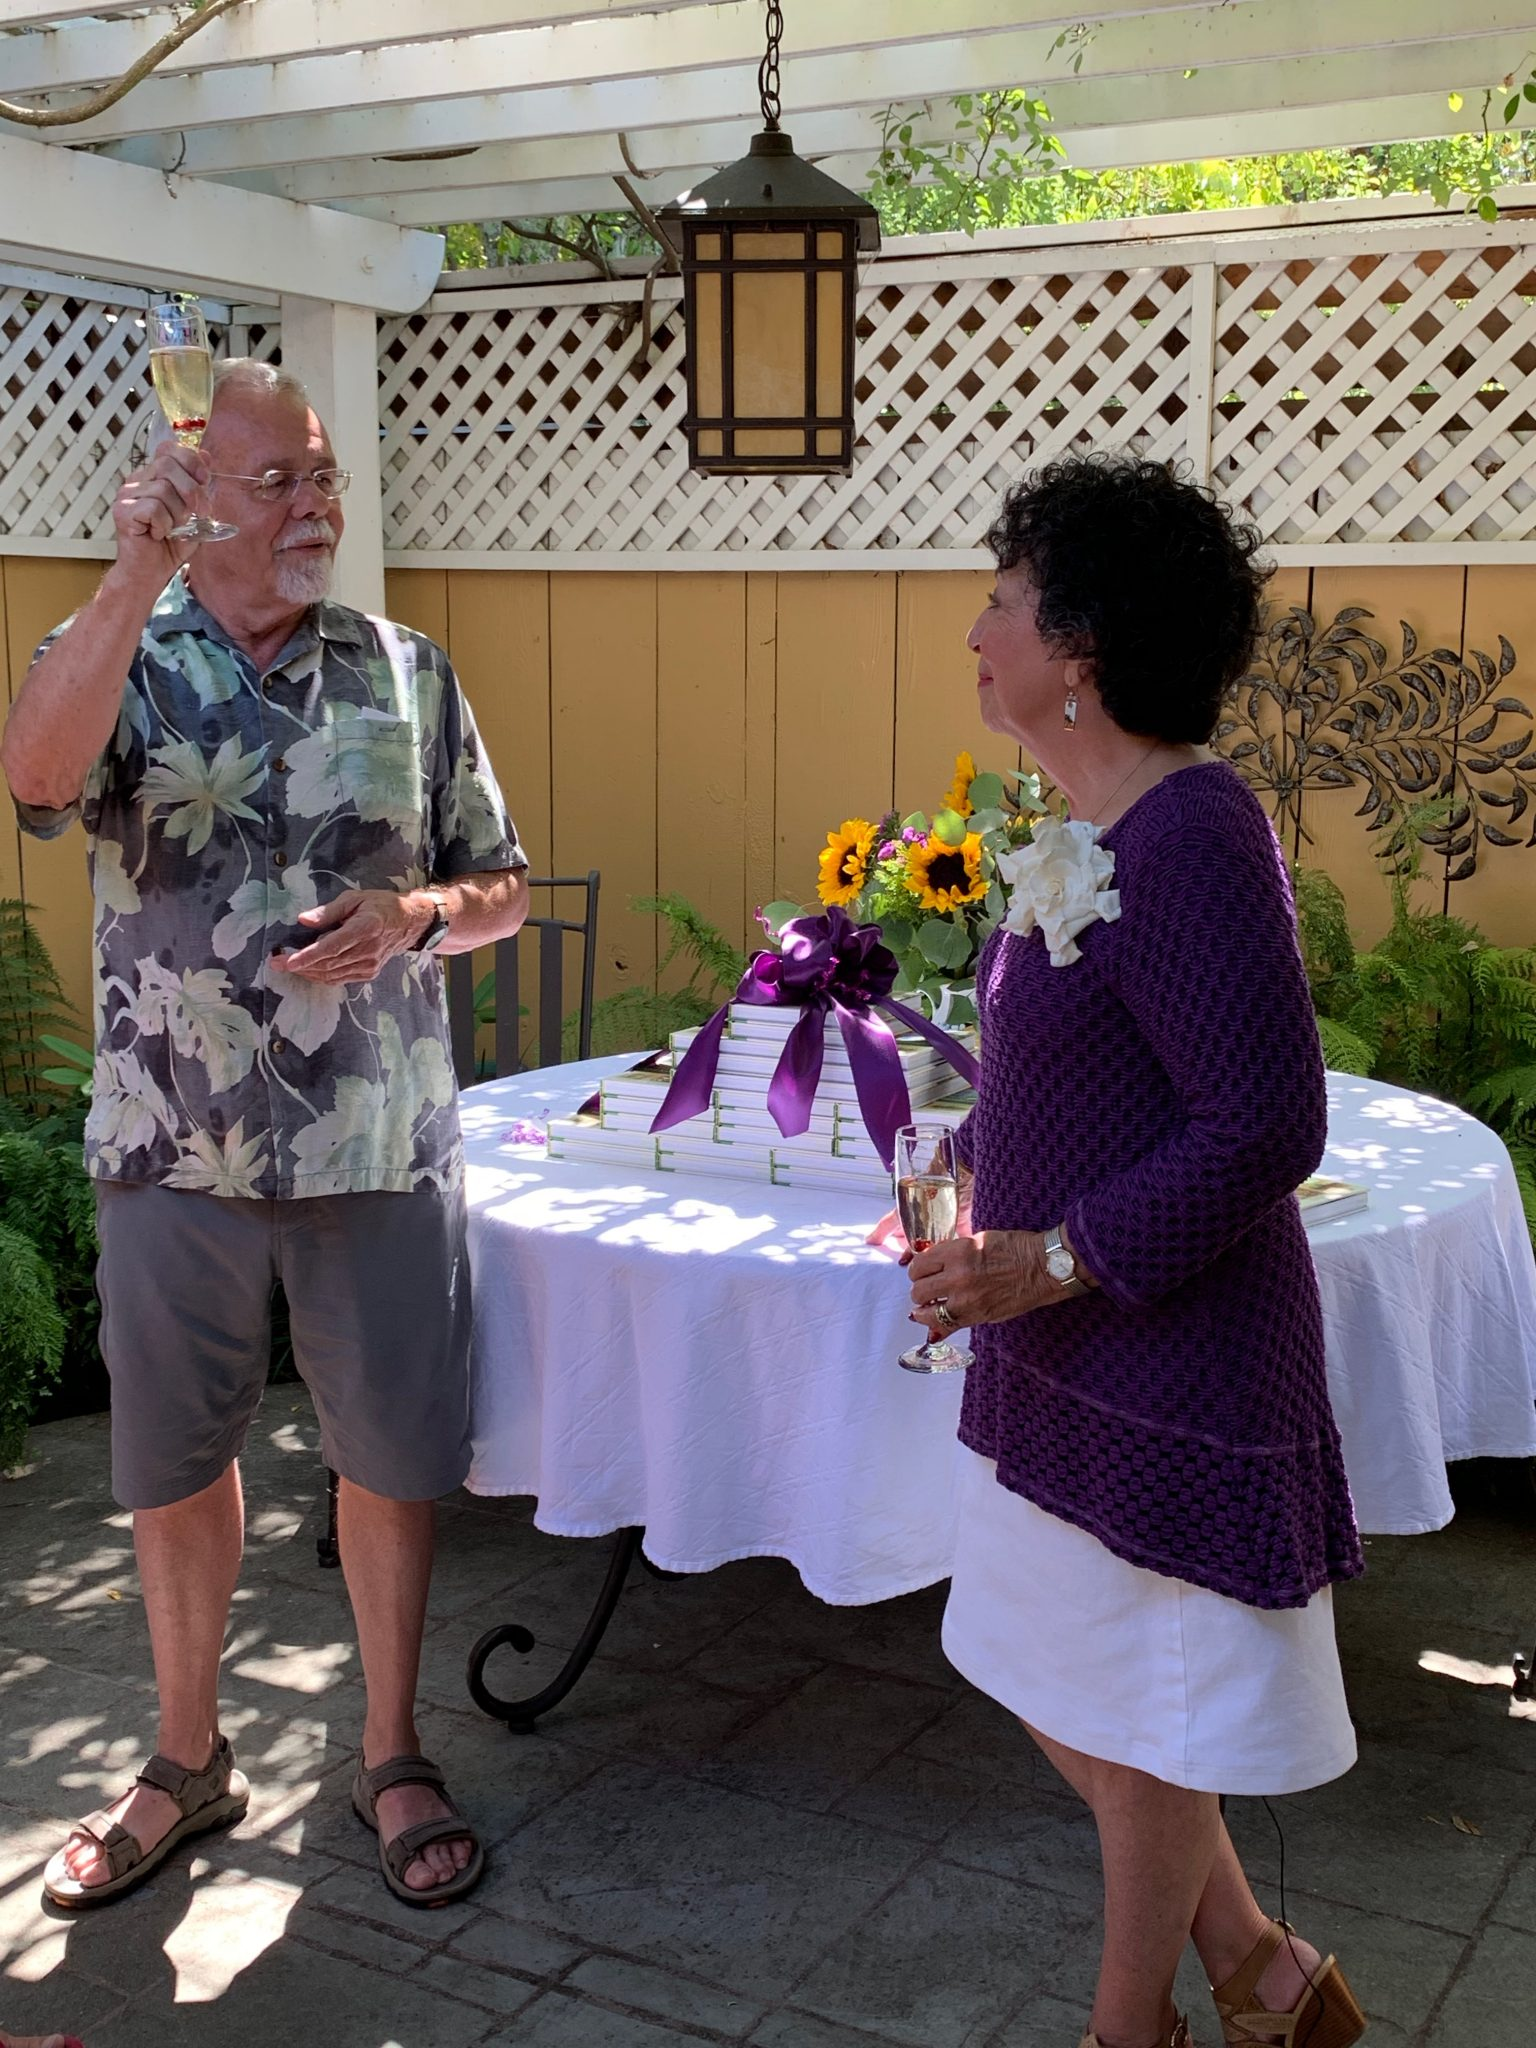 Tim King, Toni Gattone's husband, toasting his wife's success in launching her new book, The Lifelong Gardener.